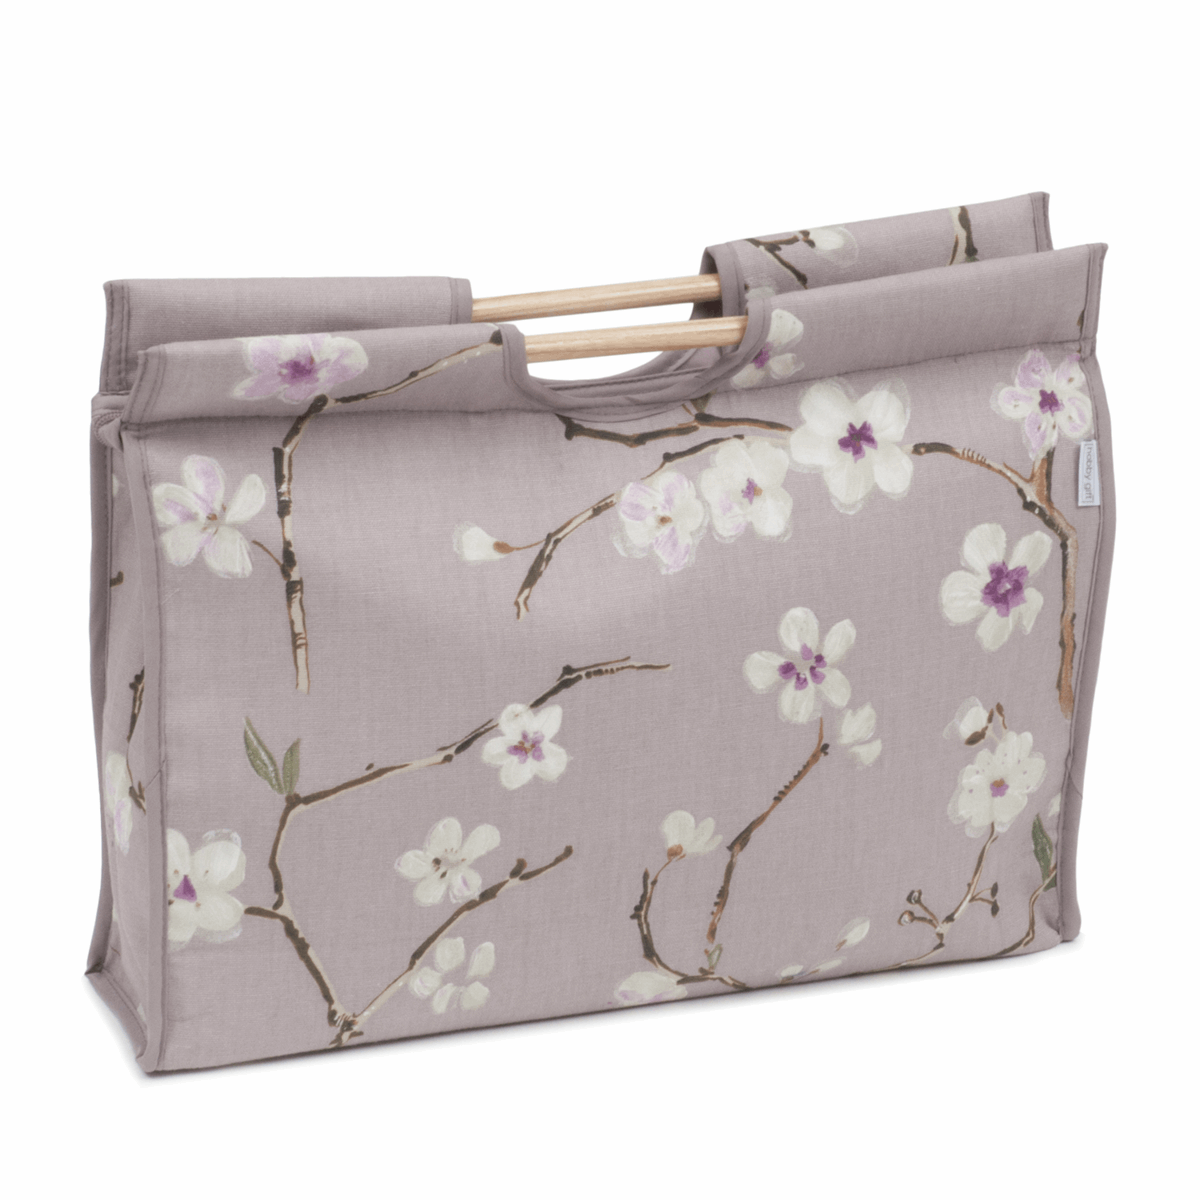 Picture of Craft Bag with Wooden Handles: Blossom